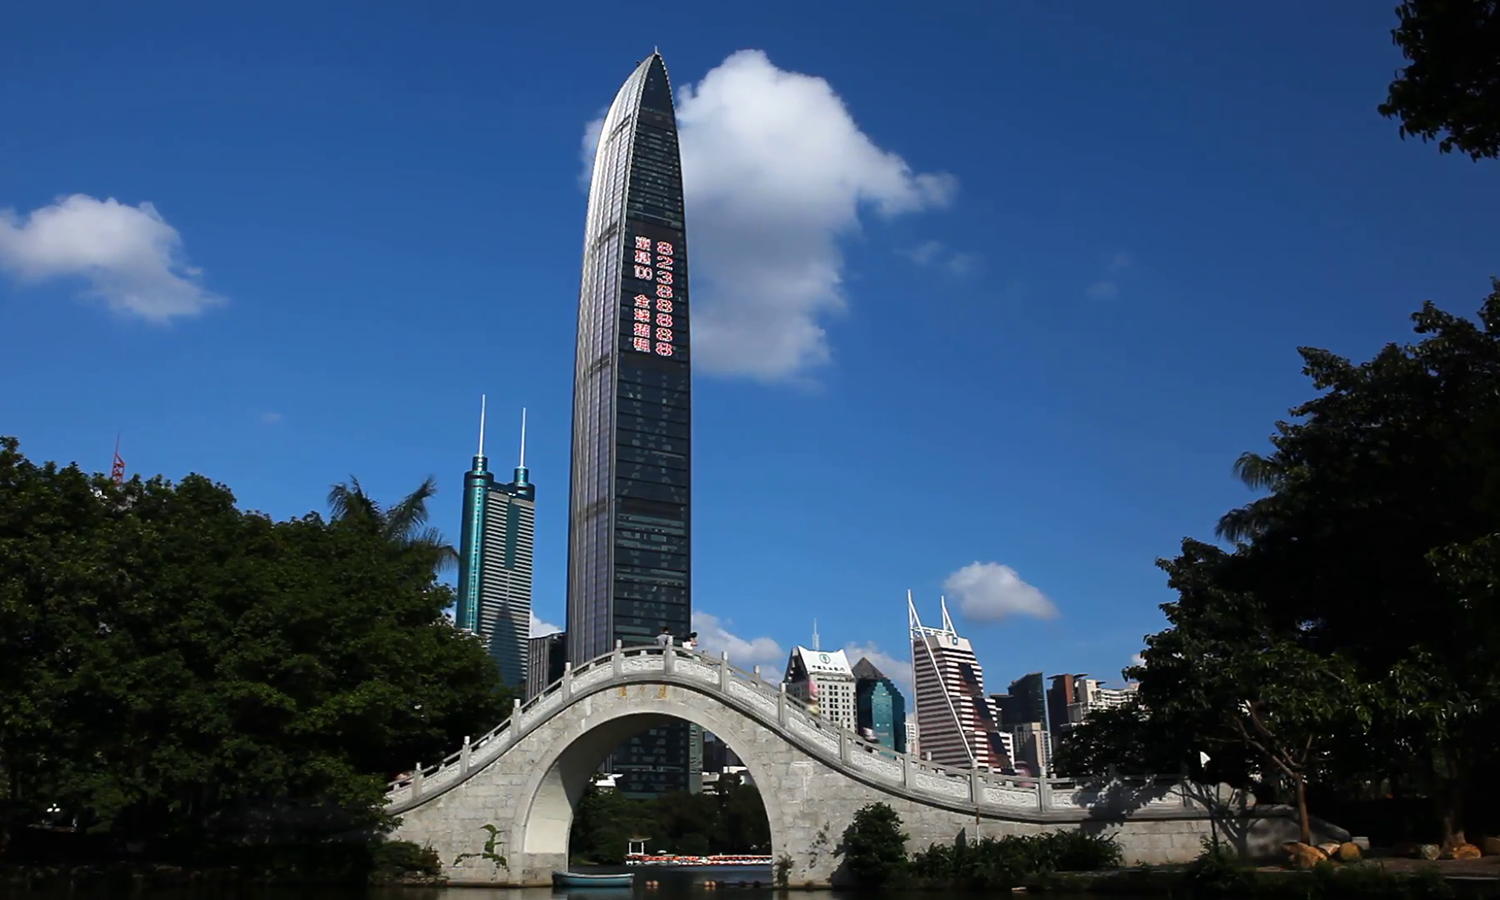 2011 shenzhen-sez-china-lychee-park-kingkey-100-shun-hing-square-time-lapse-editorial-footage-news-documentary 4wbfbnwog  F0000. [2011] Kingkey 100, Shenzhen, China, Terry Farnell & Partners (442m)